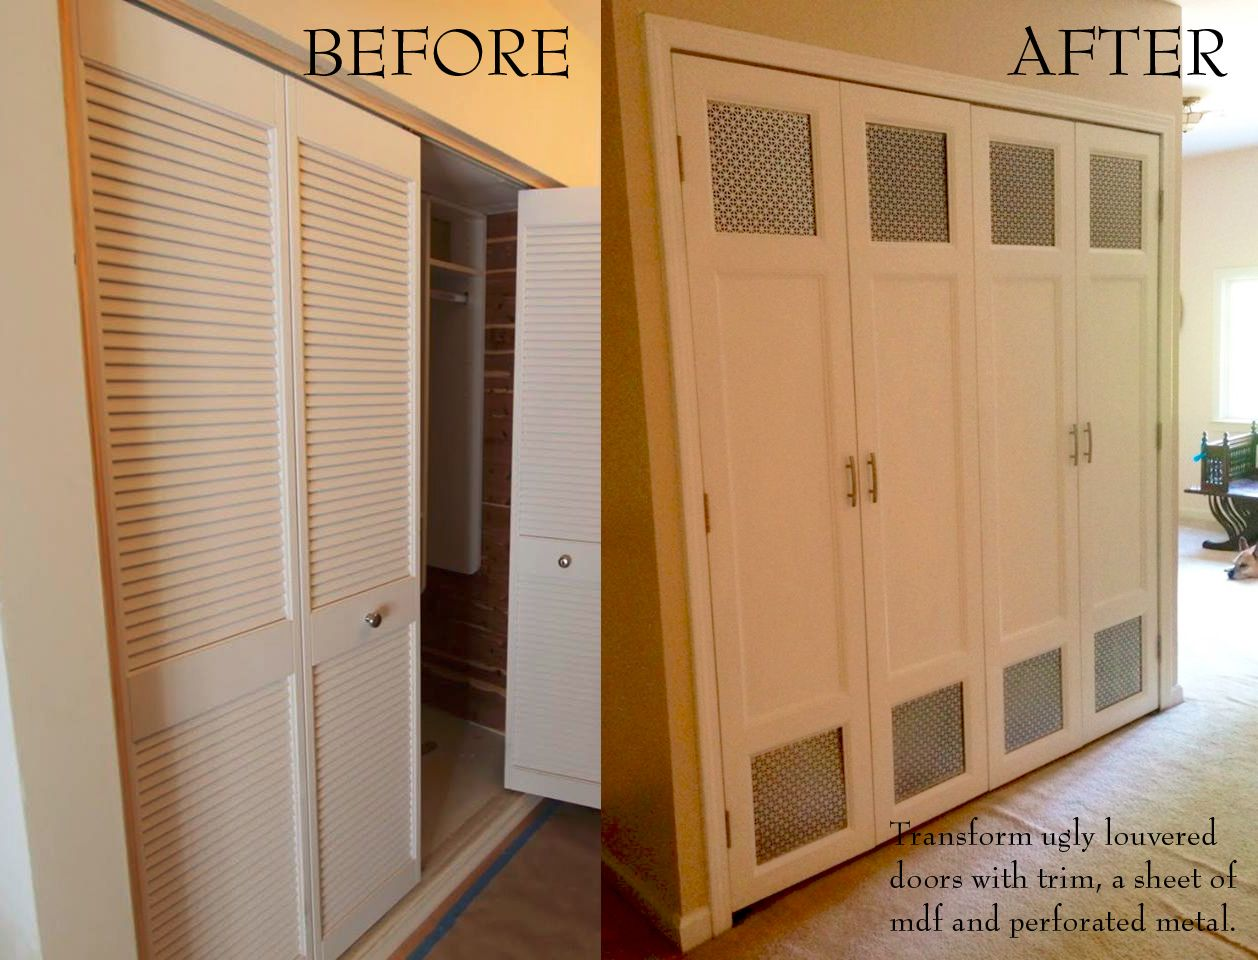 15 Must-see Louvered Door Ideas Pins  Old shutters decor, Sliding